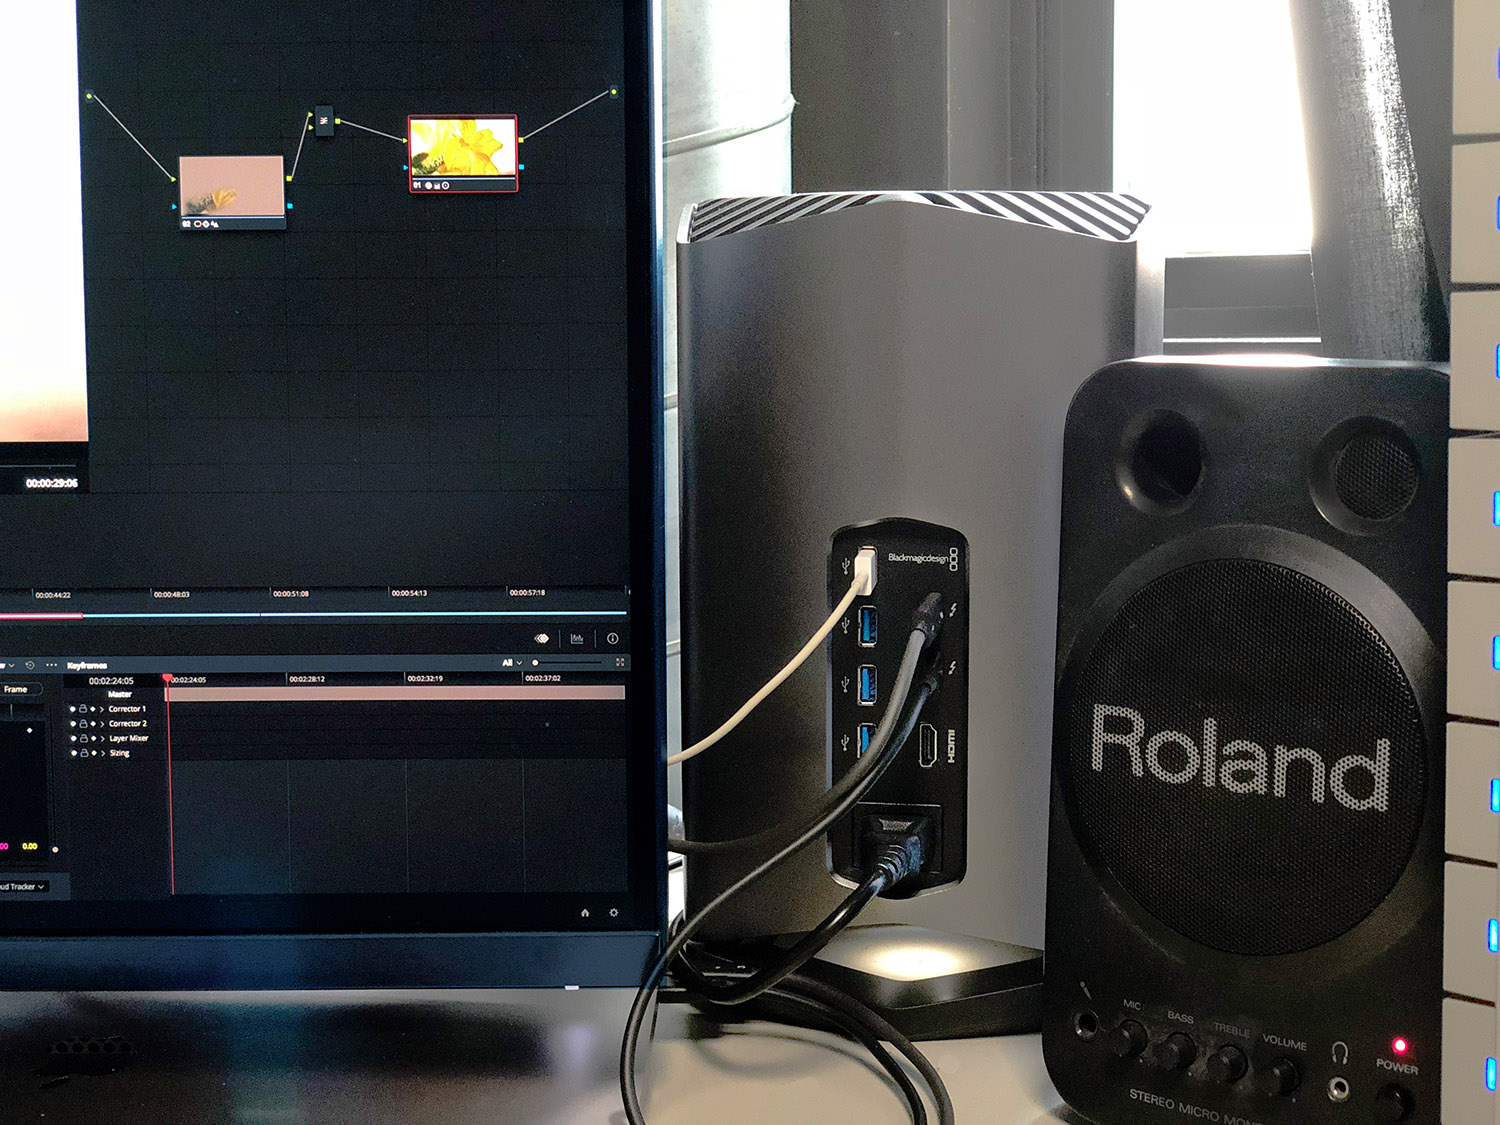 Blackmagic eGPU - What is it really going to do for me? 5